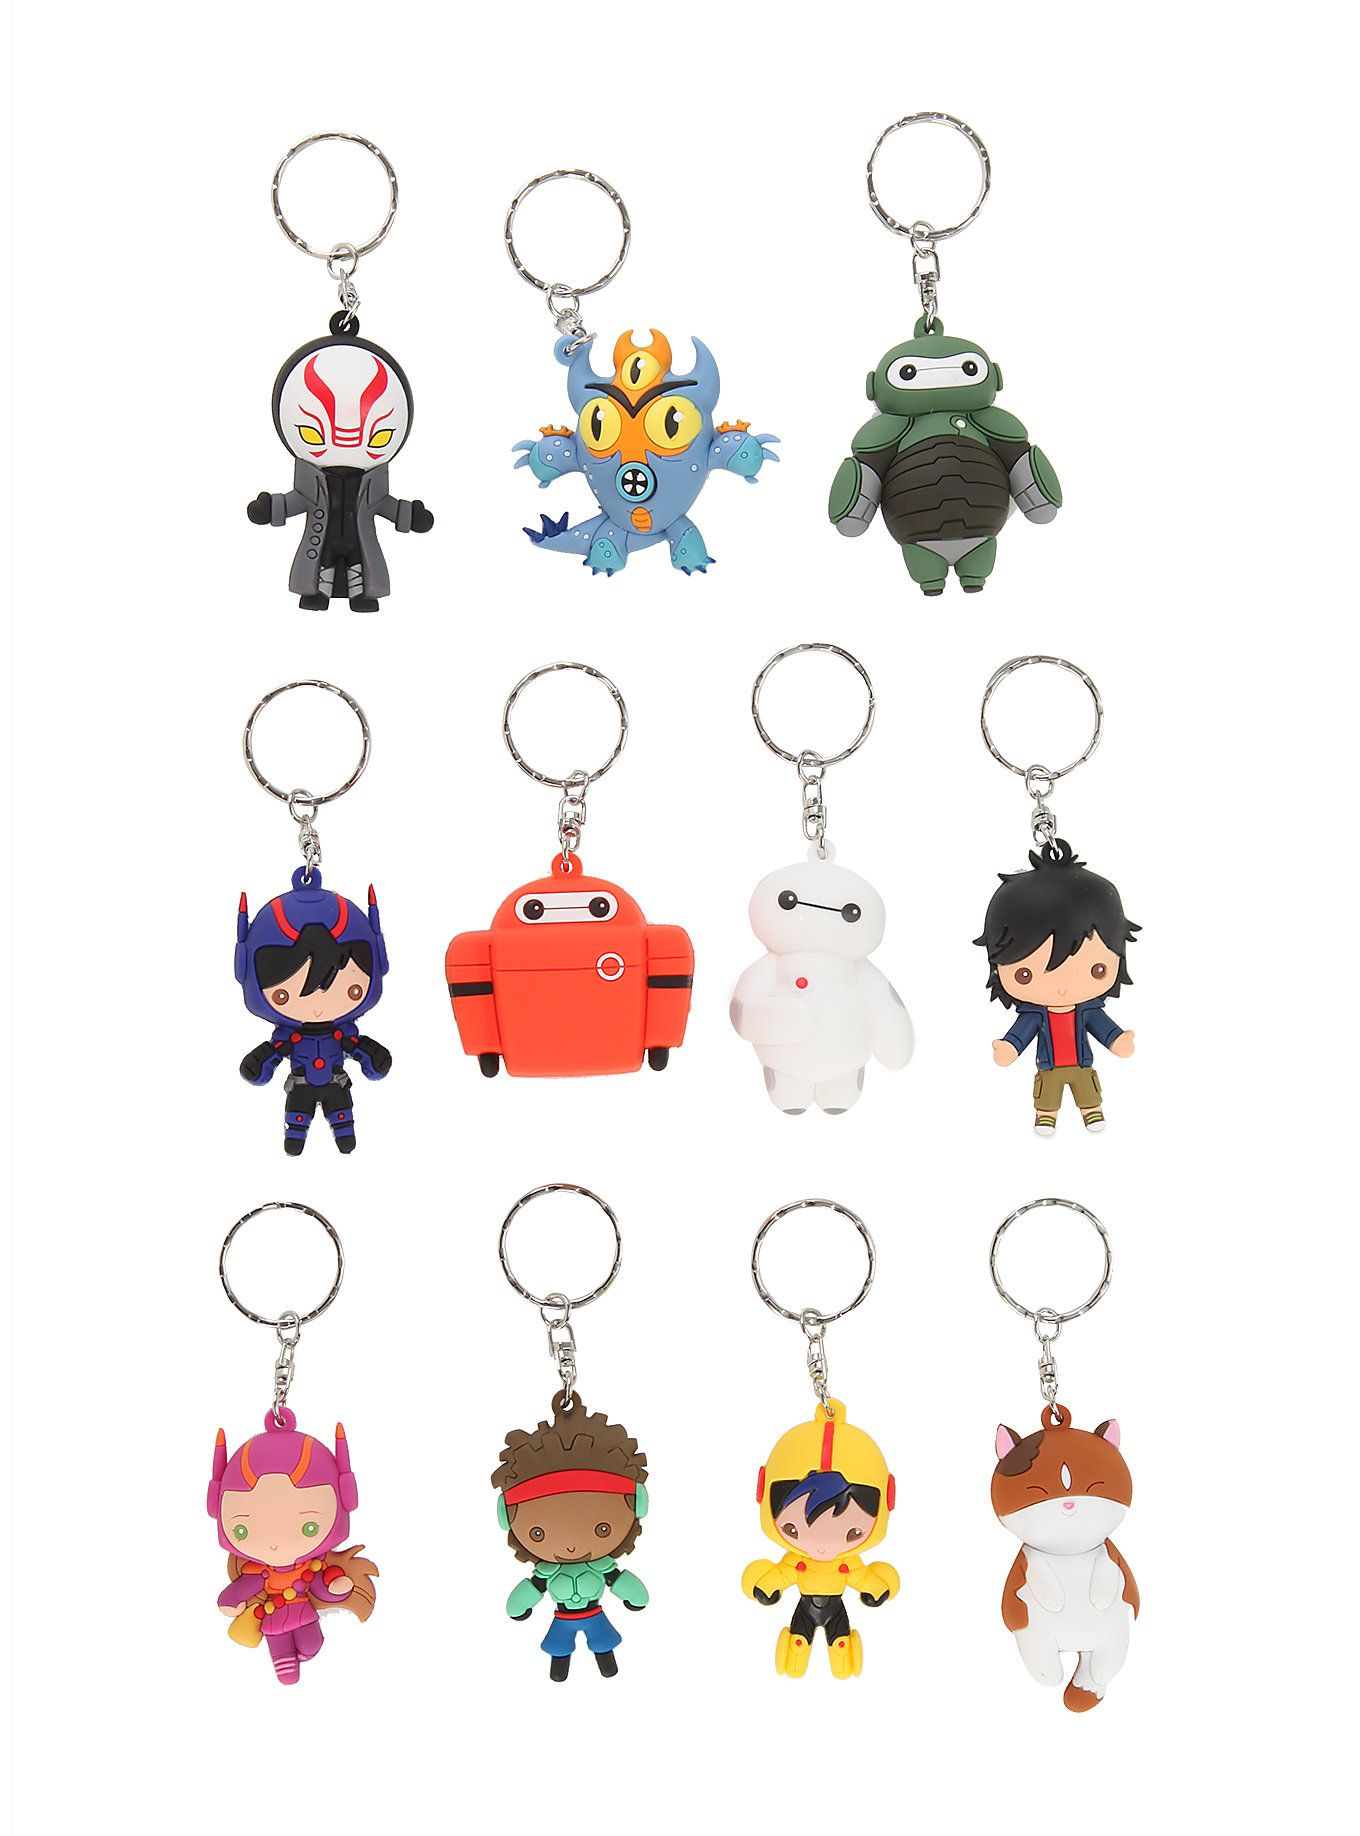 Disney Big Hero 6 Key Chain Blind Bag,